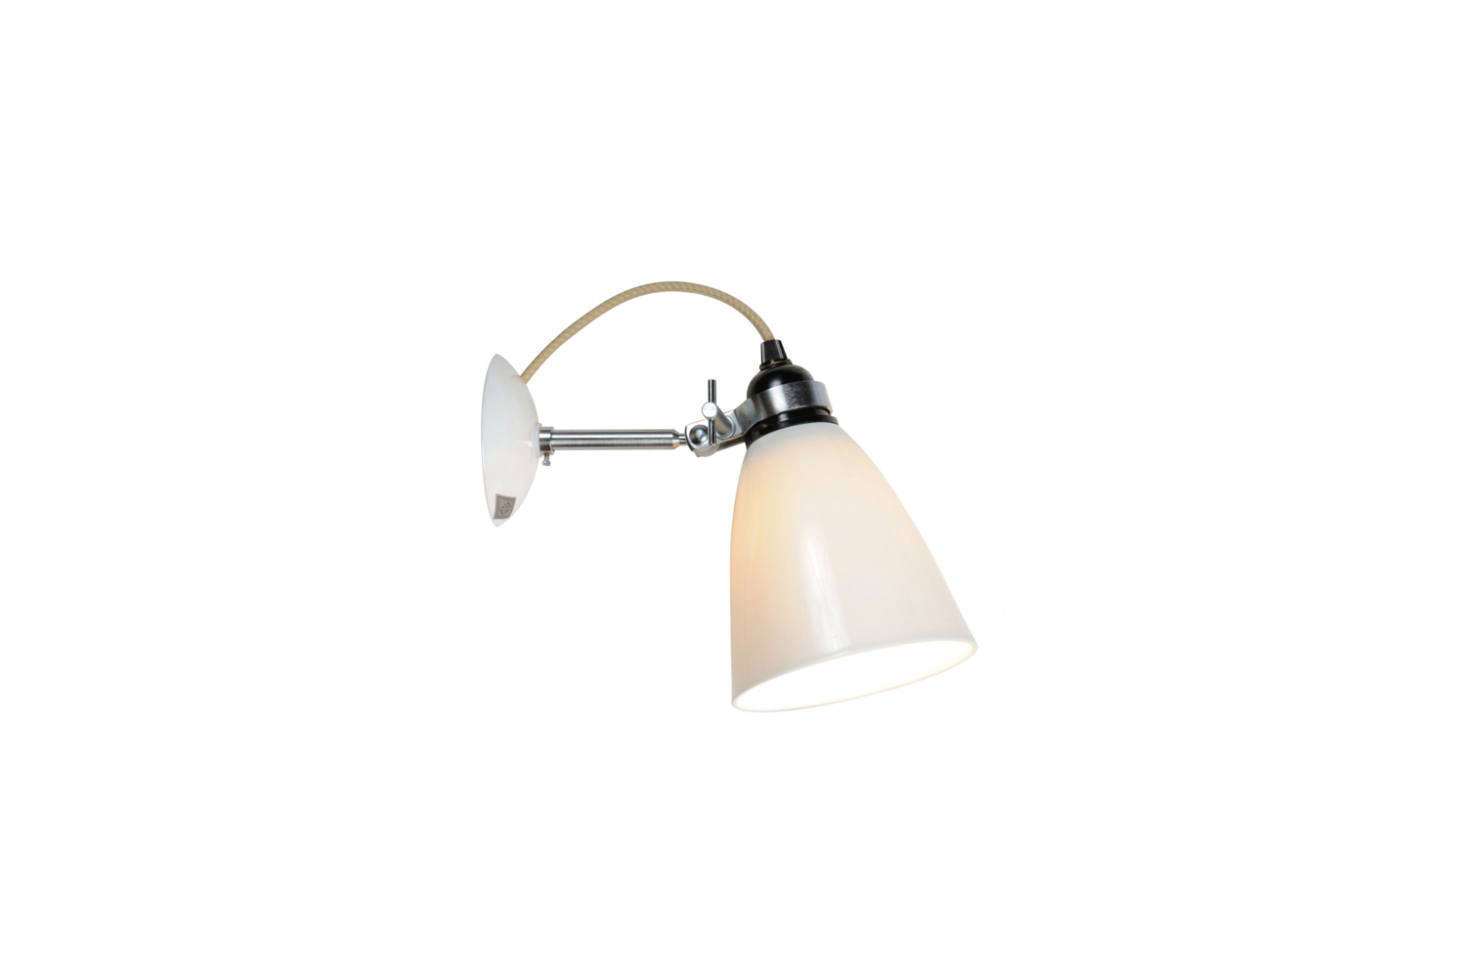 The Original BTC Hector Medium Dome Wall Light in bone white china can be found for under $200 at various retailers, including the Conran Shop for £125.